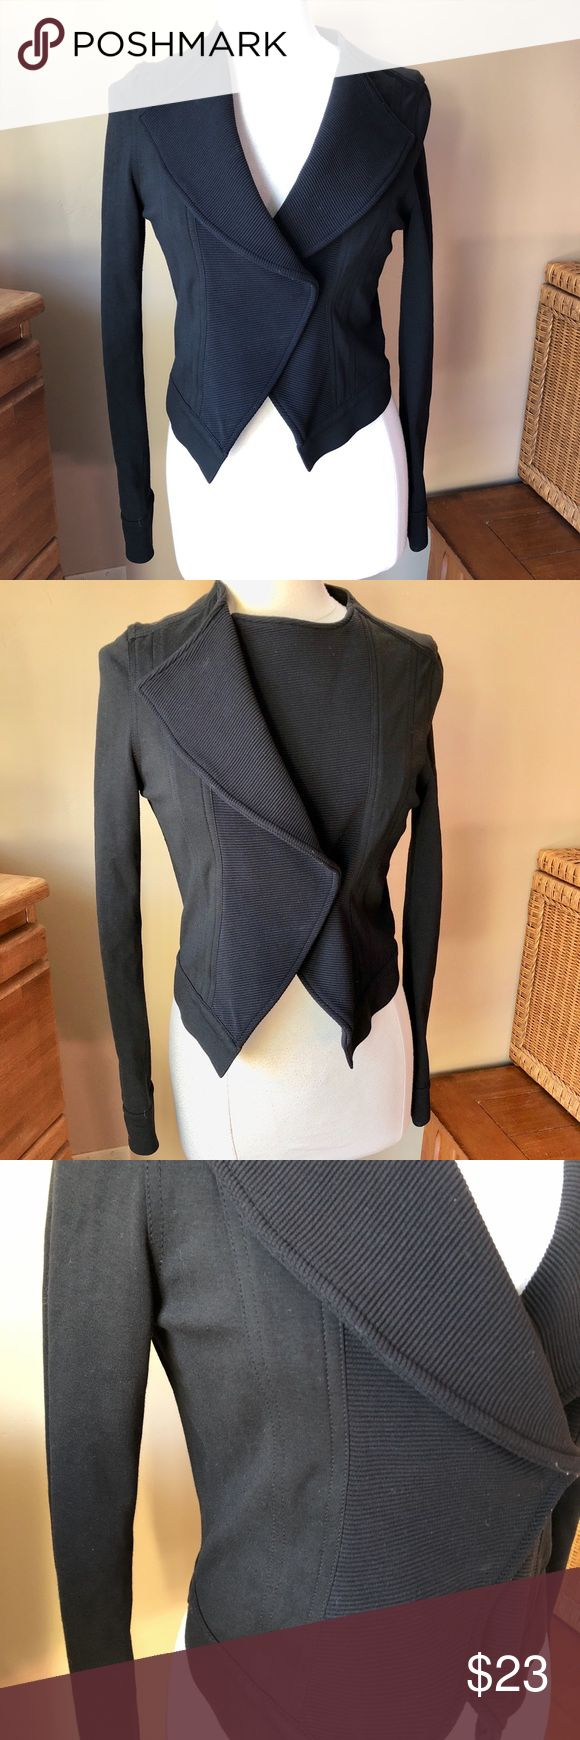 7 For All Mankind Black Jacket Stylish jacket with lapels that can be worn open or closed; snap closure. See last photo for buttons, which have black chipped off parts of top of buttons. Fabric tags shown in photo. Shown on Size 6/8 mannequin (mannequin measures 37-26-37.) 👠👗👜 Check out $6 section of closet, before sold items. All $6 items final price unless bundled. 15% bundle discount. 🚫NO MODELING 🚫NO TRADES 7 For All Mankind Jackets & Coats